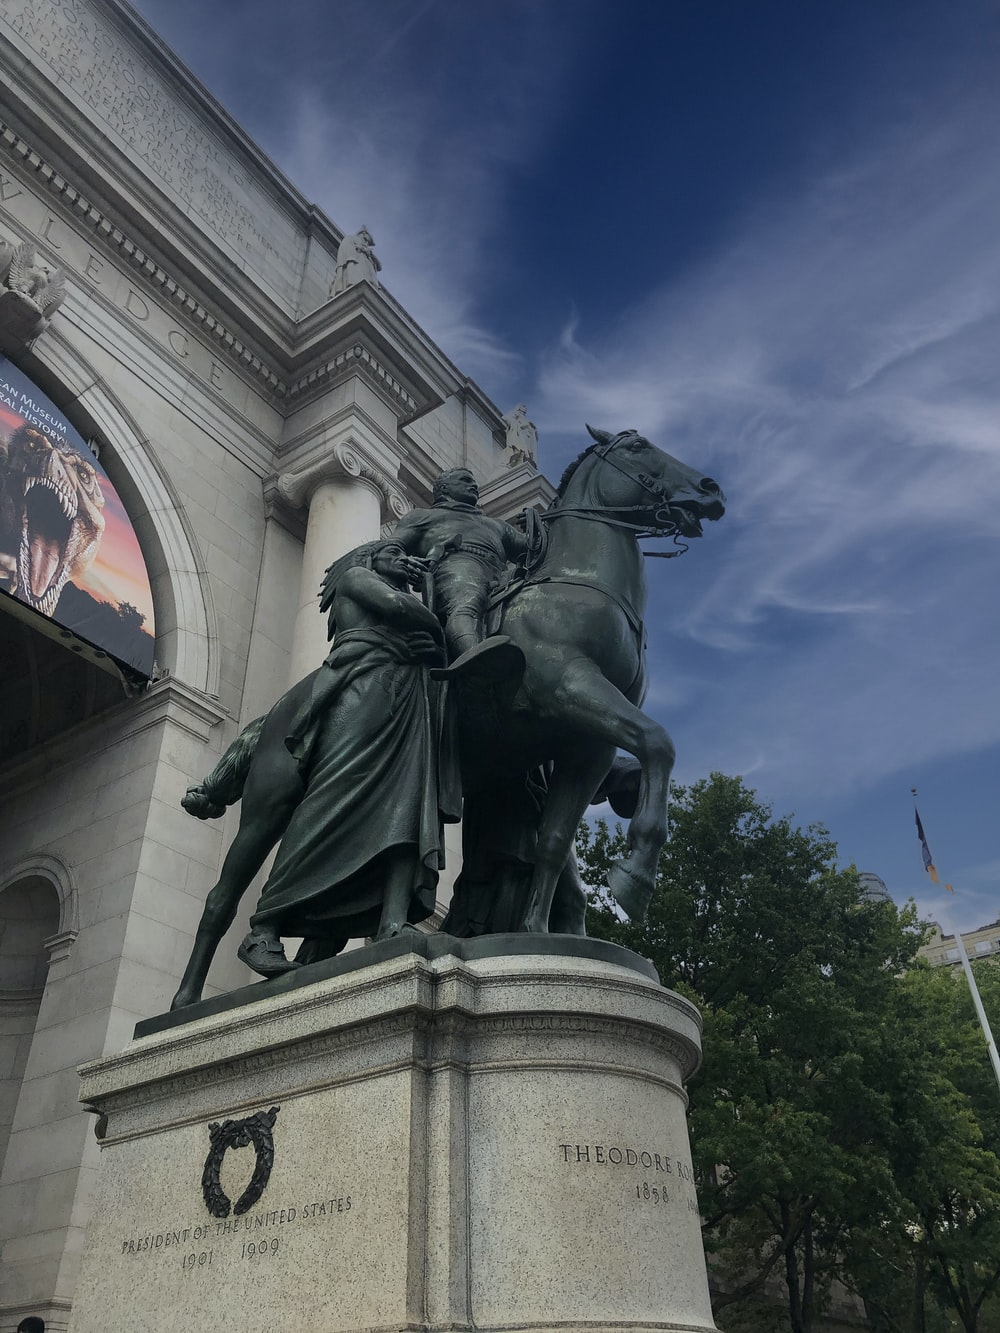 man riding horse statue under blue sky during daytime